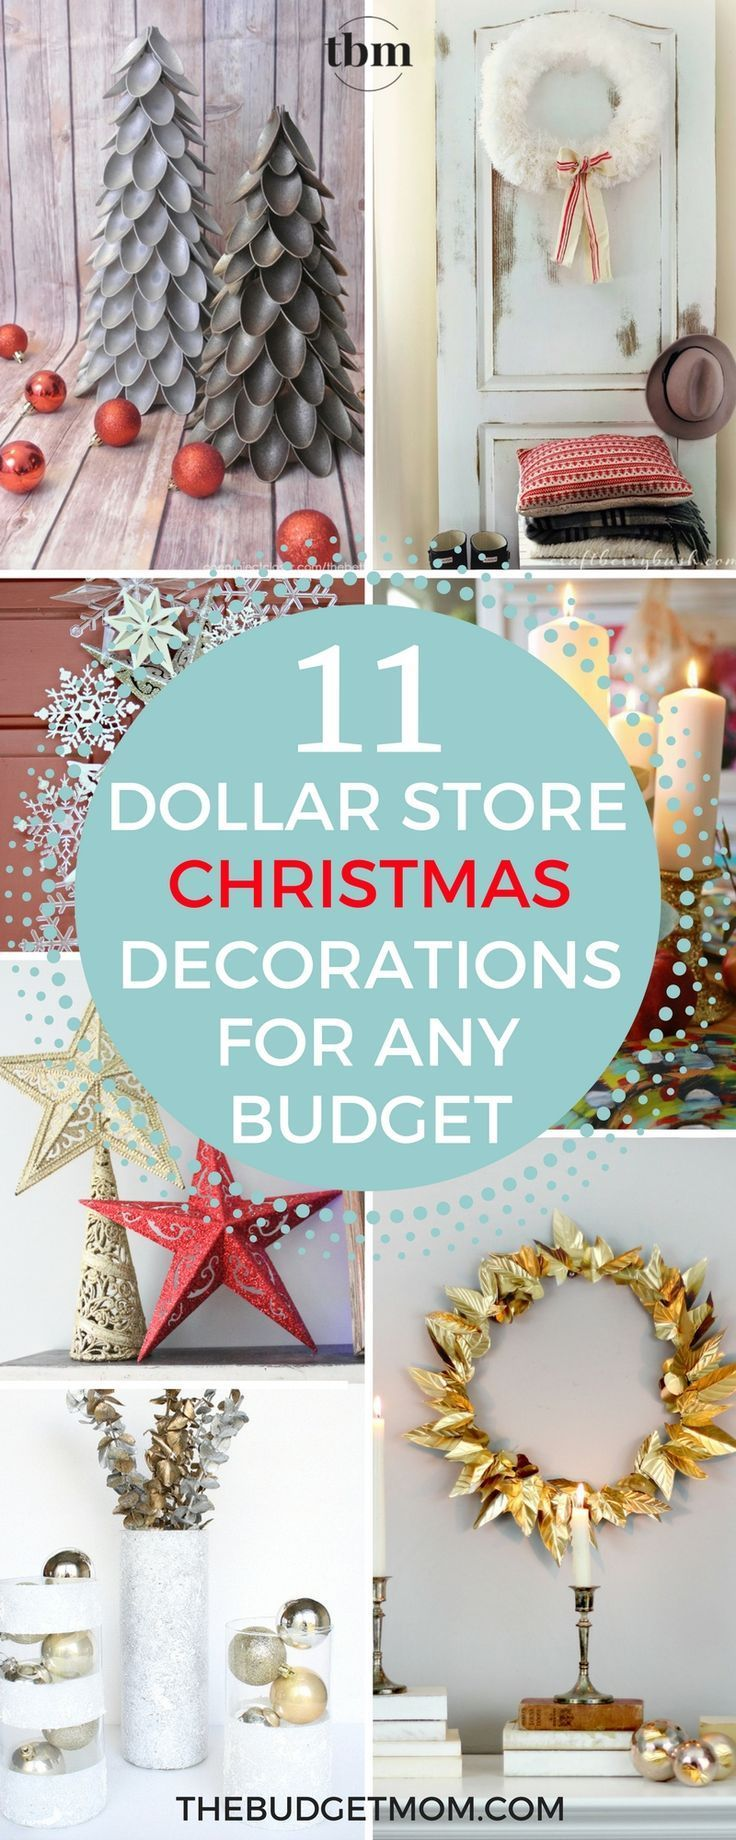 11 Glamorous Dollar Store Christmas Decorations For Any Budget Nice Look